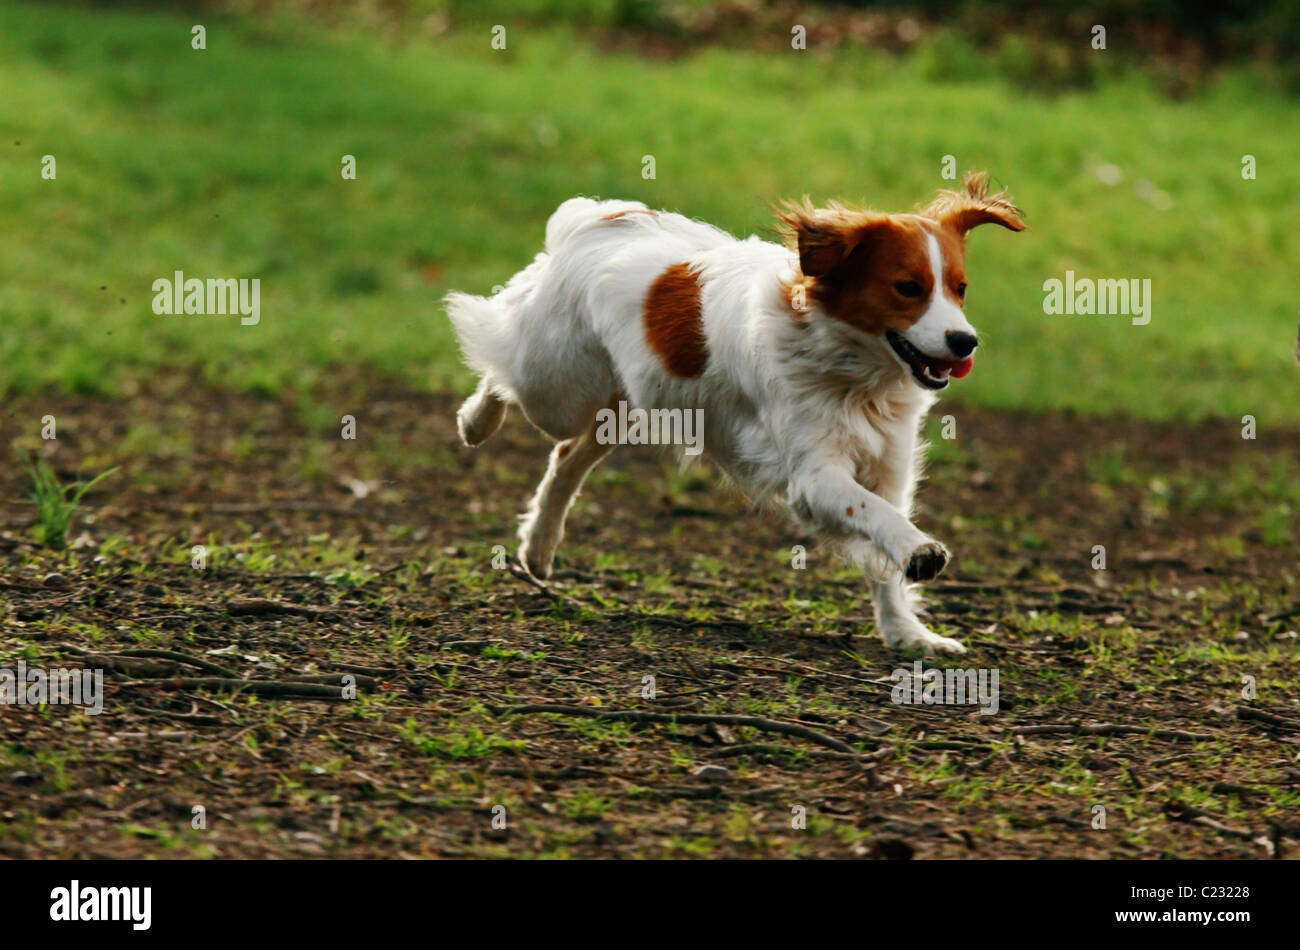 running dog in the park - Stock Image